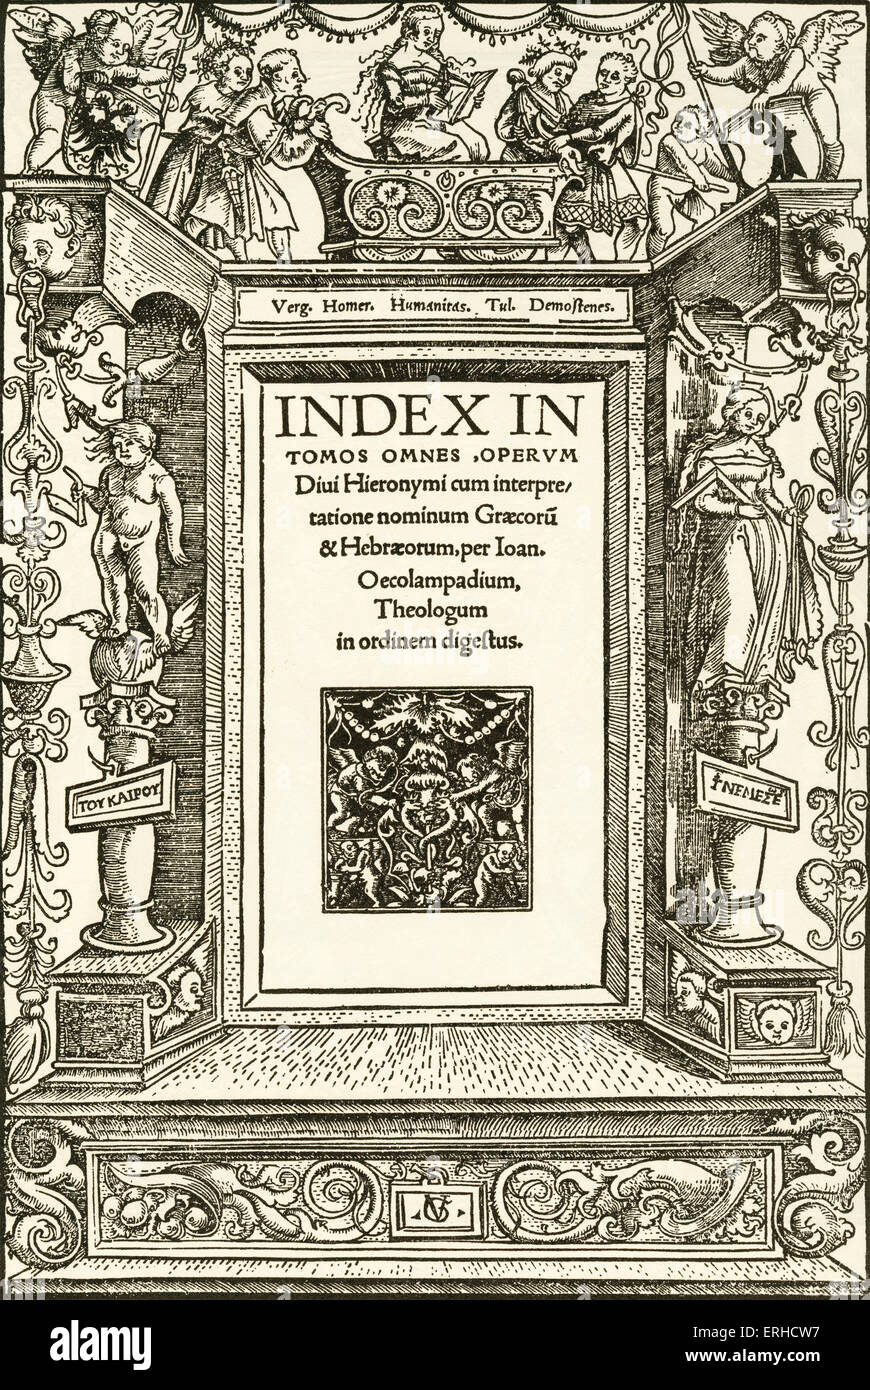 Humanitas, title-page woodcut by Urs Graf, 1513. At the top, a figure representing Humanitas sits in a small triumphal - Stock Image